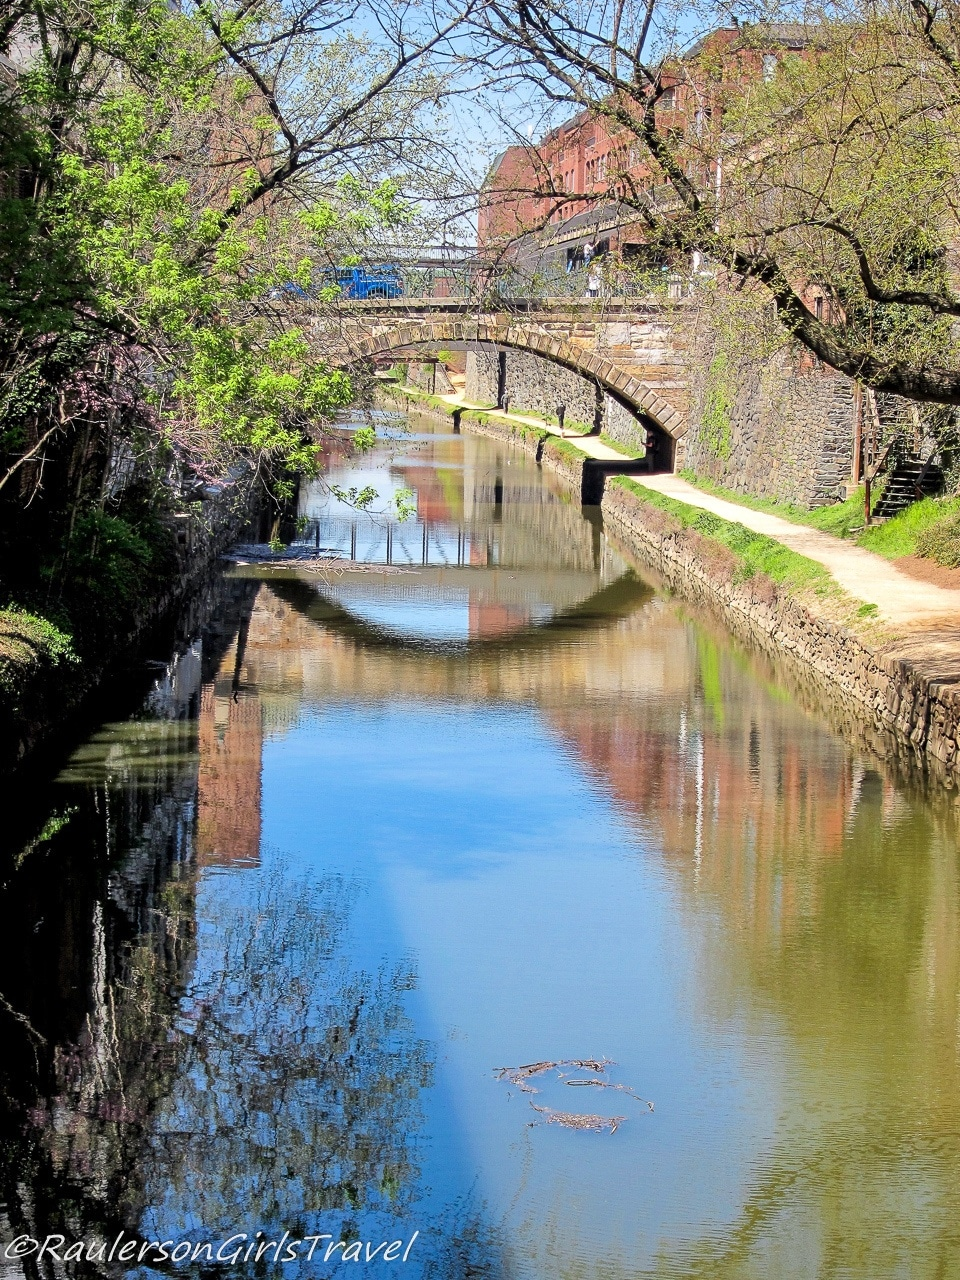 Reflections in the Chesapeake & Ohio Canal